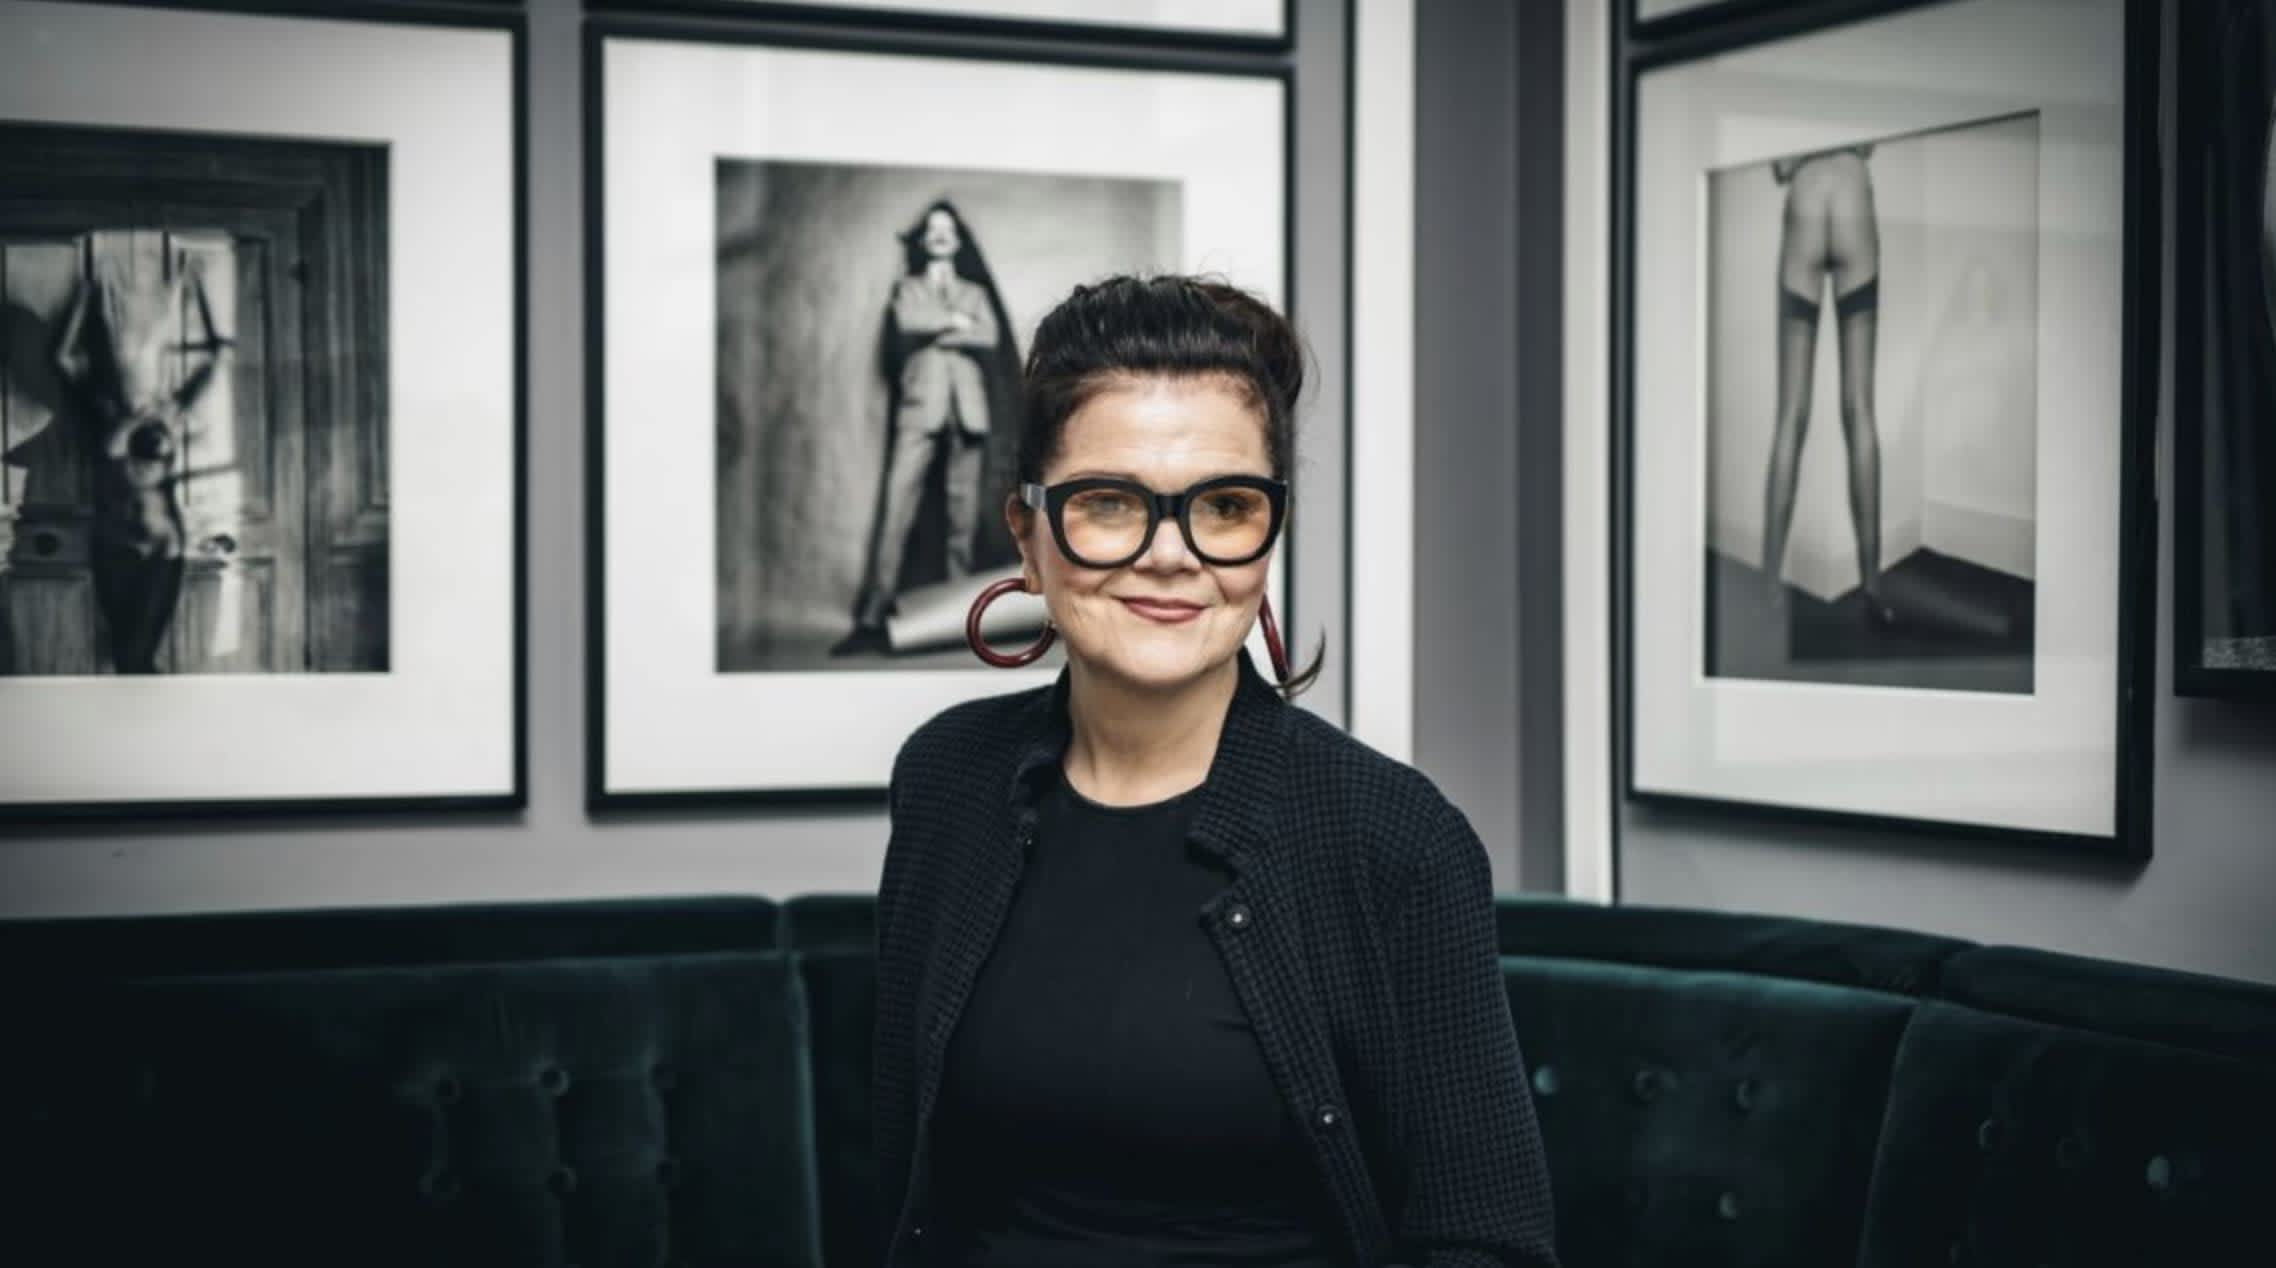 What I Collect and Why with Maeve Doyle, We spoke with Maddox Artistic Director and renowned art critic, Maeve Doyle,...